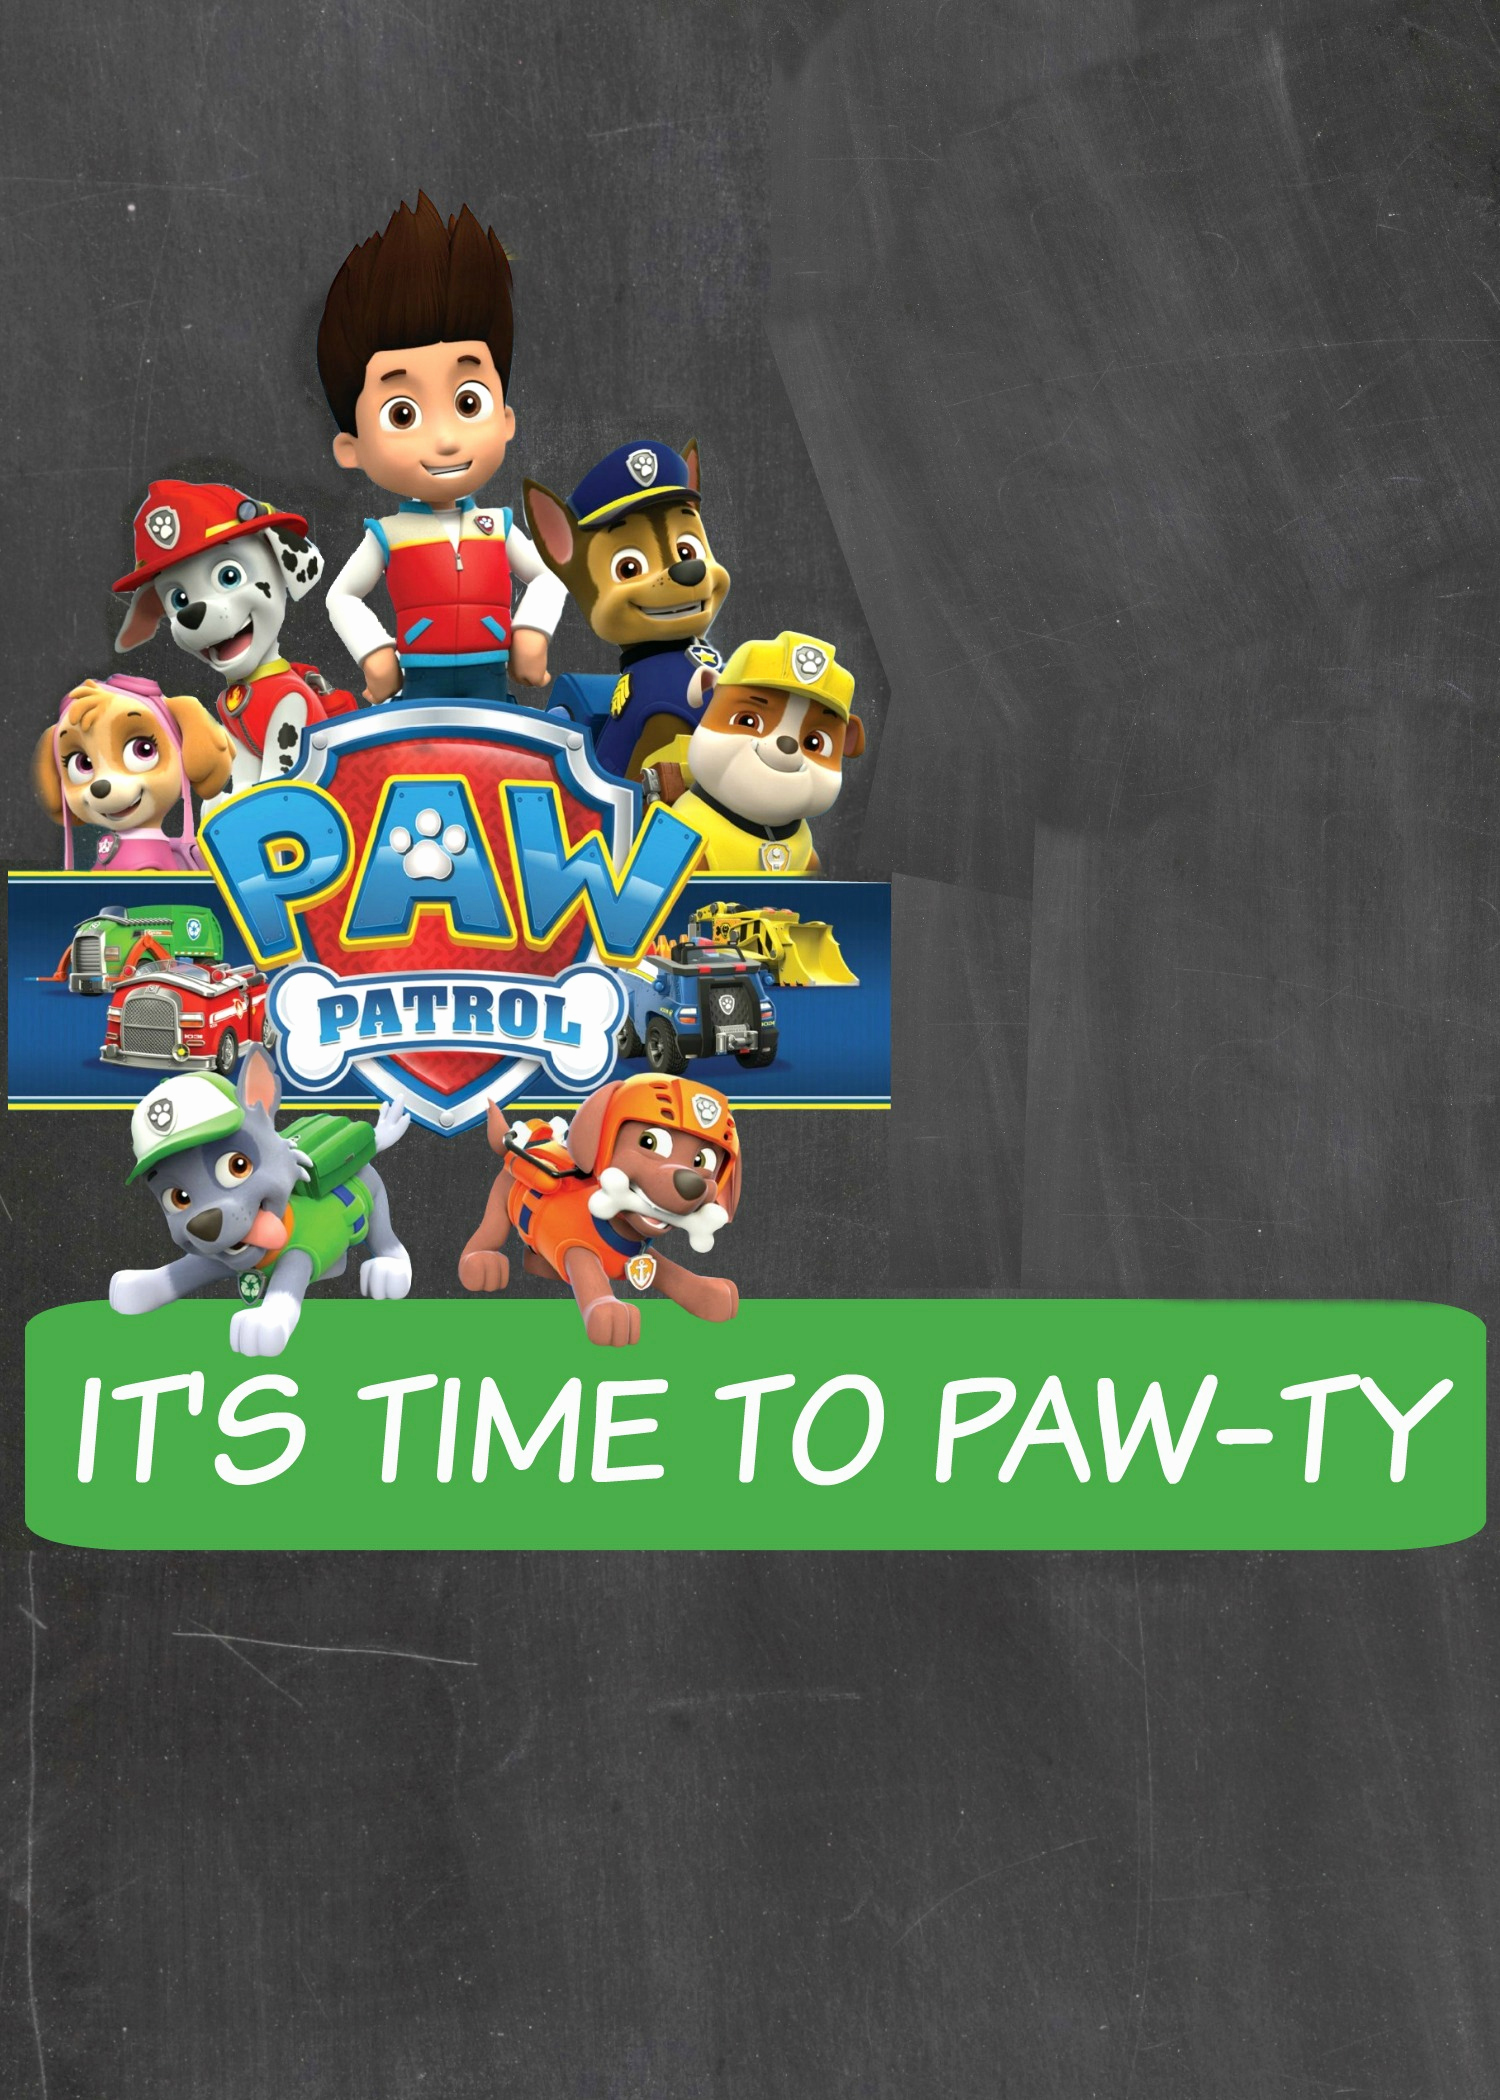 Paw Patrol Invitation Template Free Best Of How to Make A Paw Patrol Digital Invitation